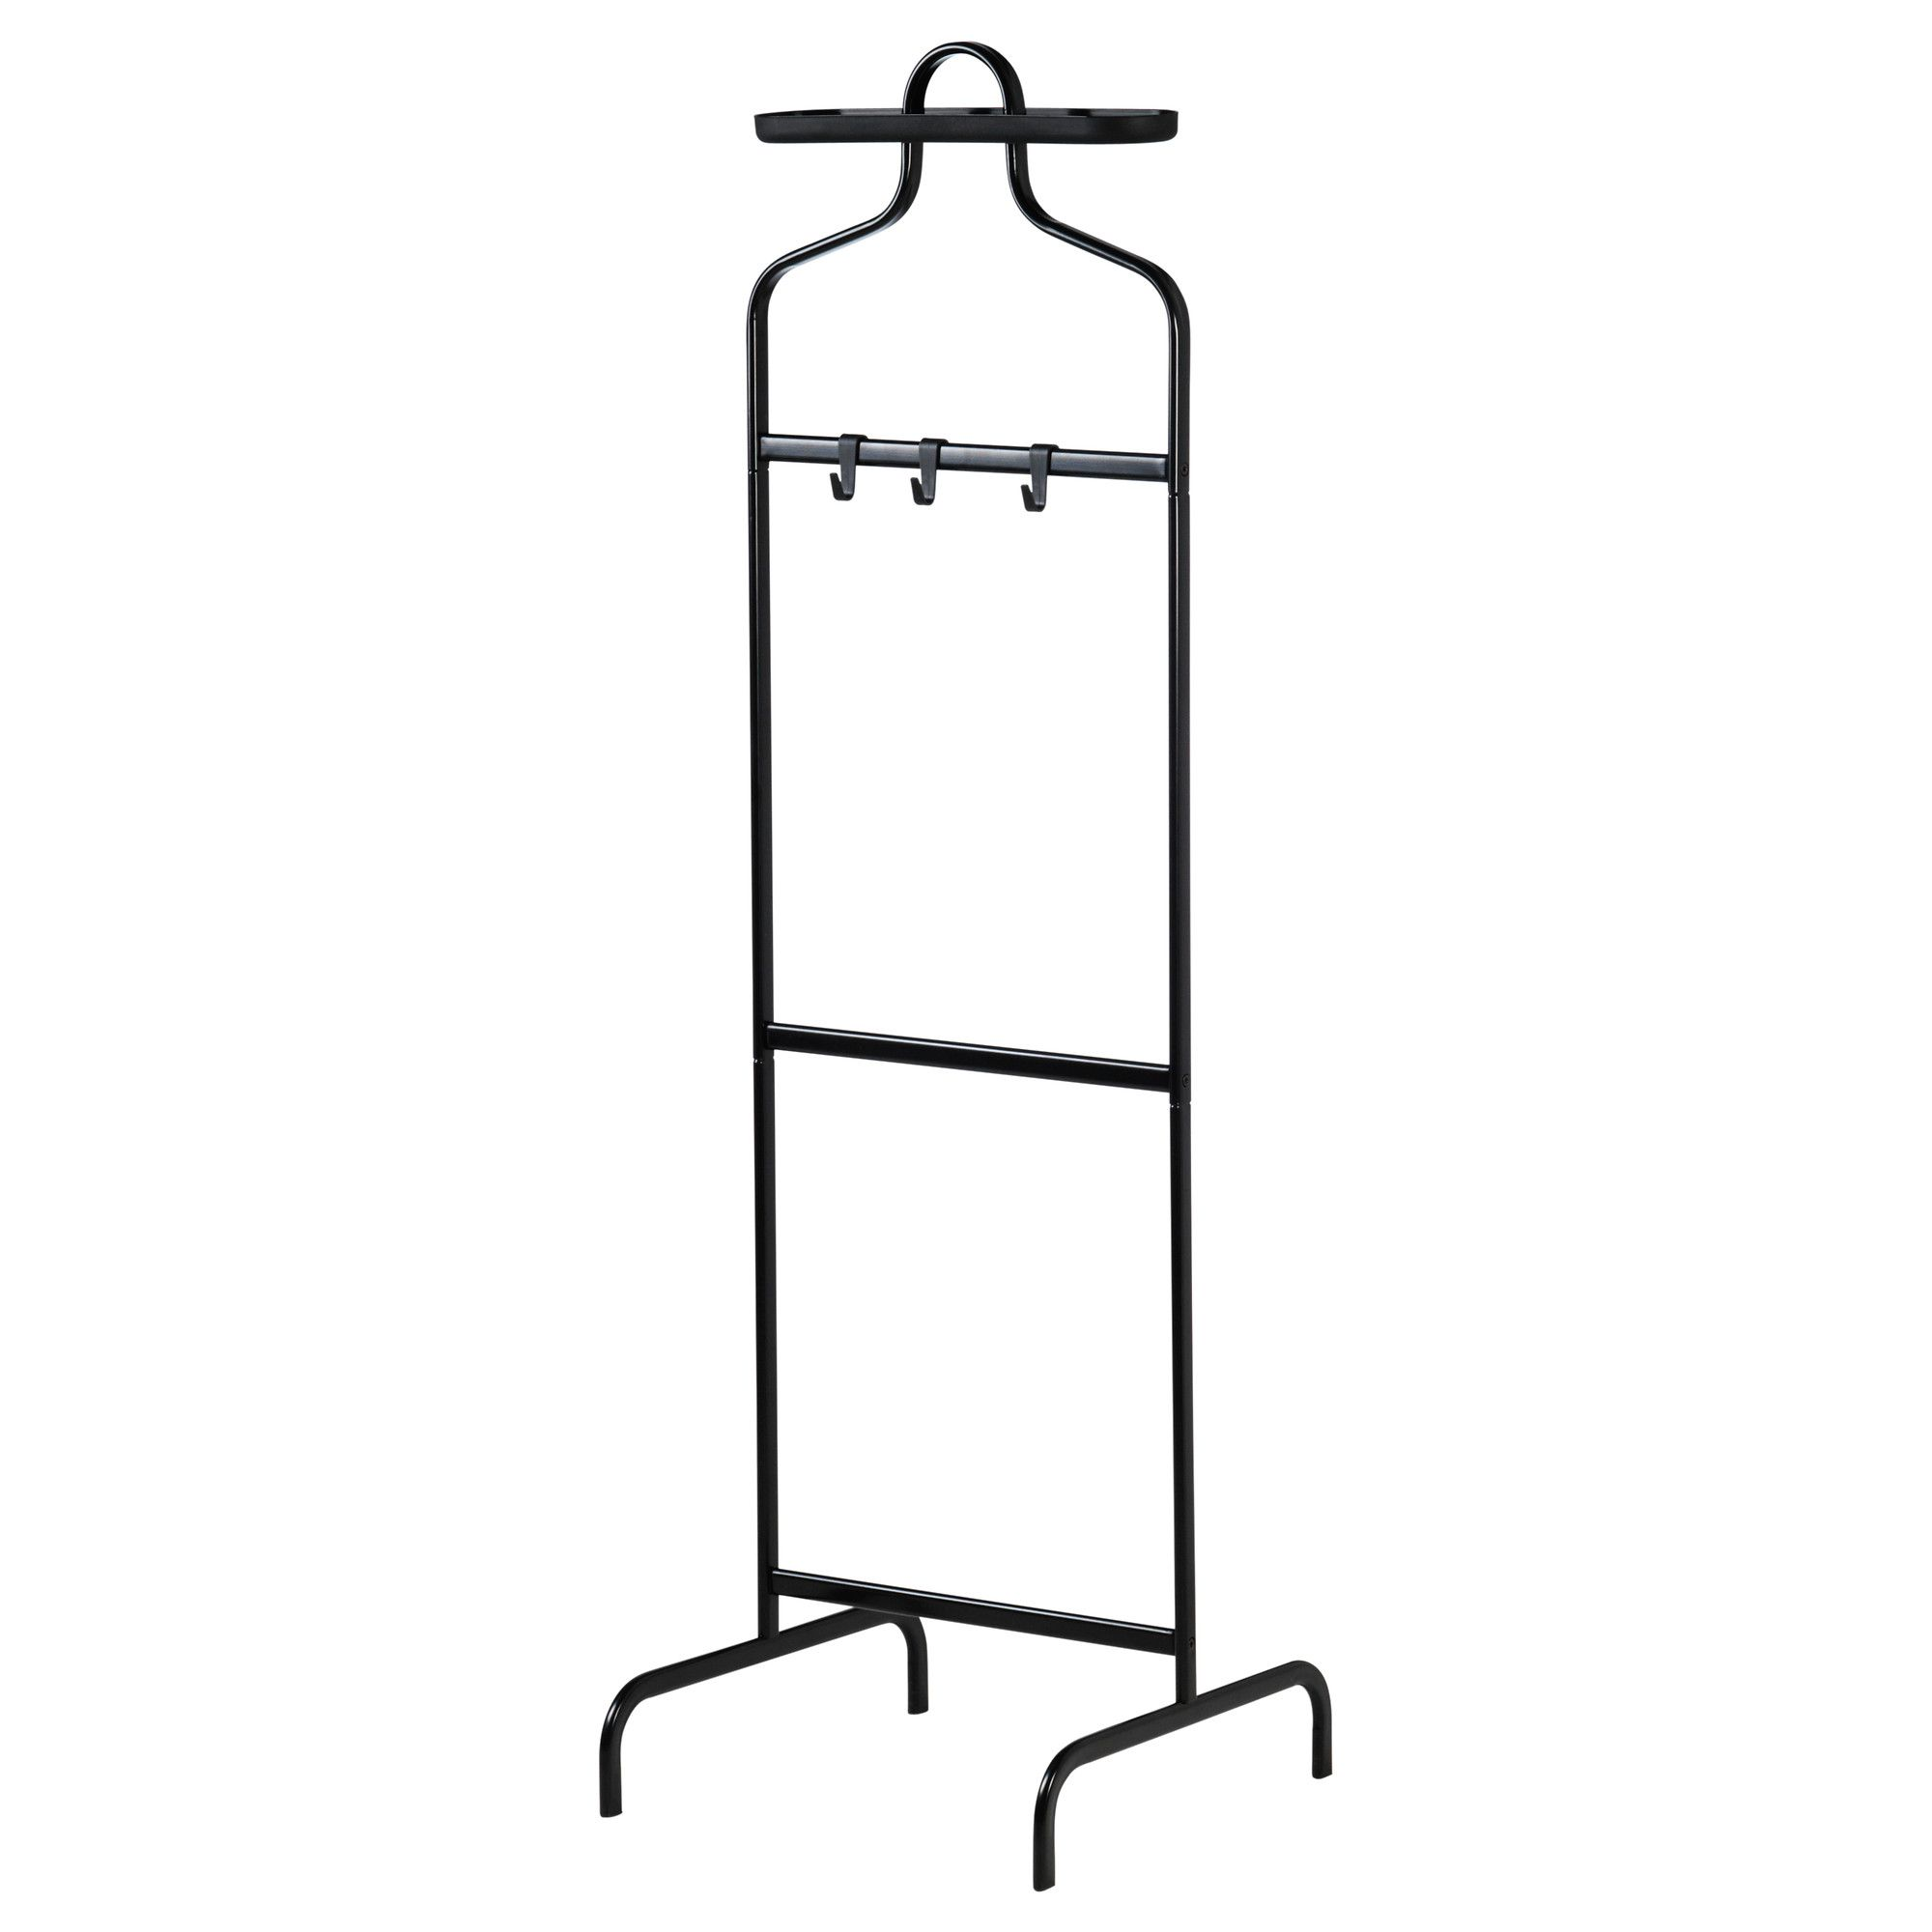 Us Furniture And Home Furnishings Valet Stand Ikea